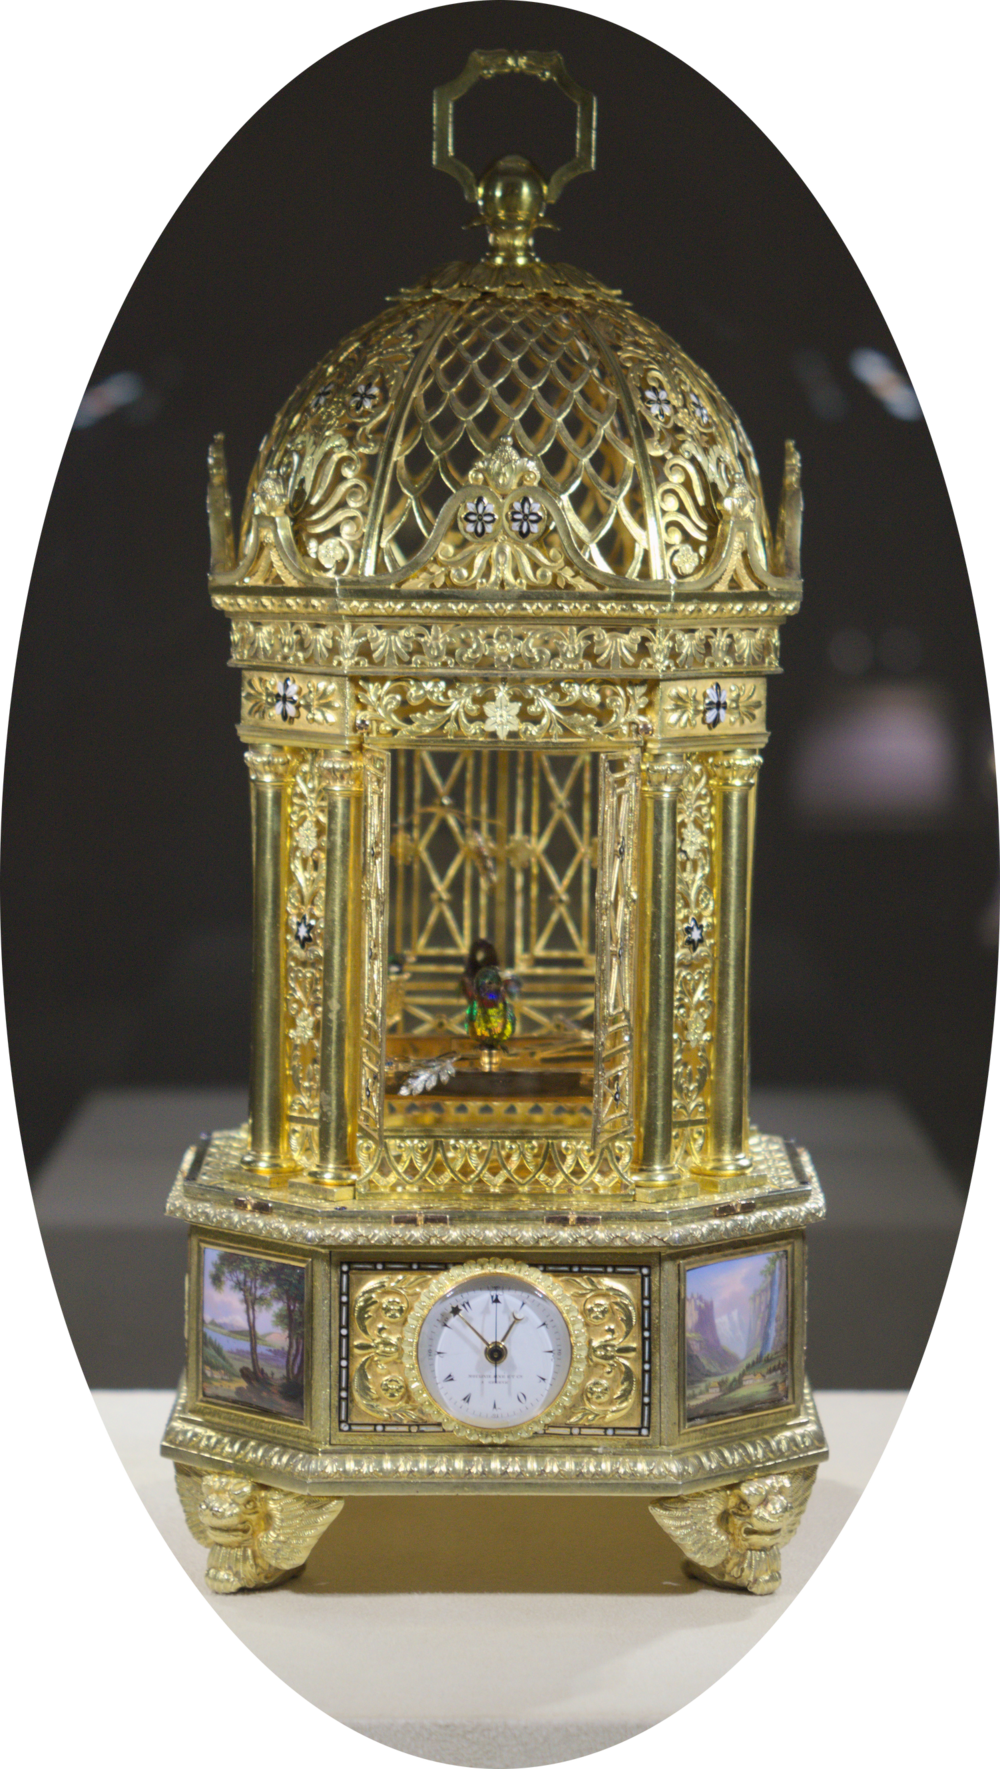 ex·trav·a·gant. ikˈstravəɡənt/.  adjective. Example:  A solid gold case with enamel detailing with Grande Sonnerie, Petite sonnerie, music and a singing bird. Each of the five birds are activated either every hour or on demand with the larger two turning their heads, opening & closing beaks, flapping their wings, tail and jumping between the two bars. The three yellow birds move their heads and open their beaks.